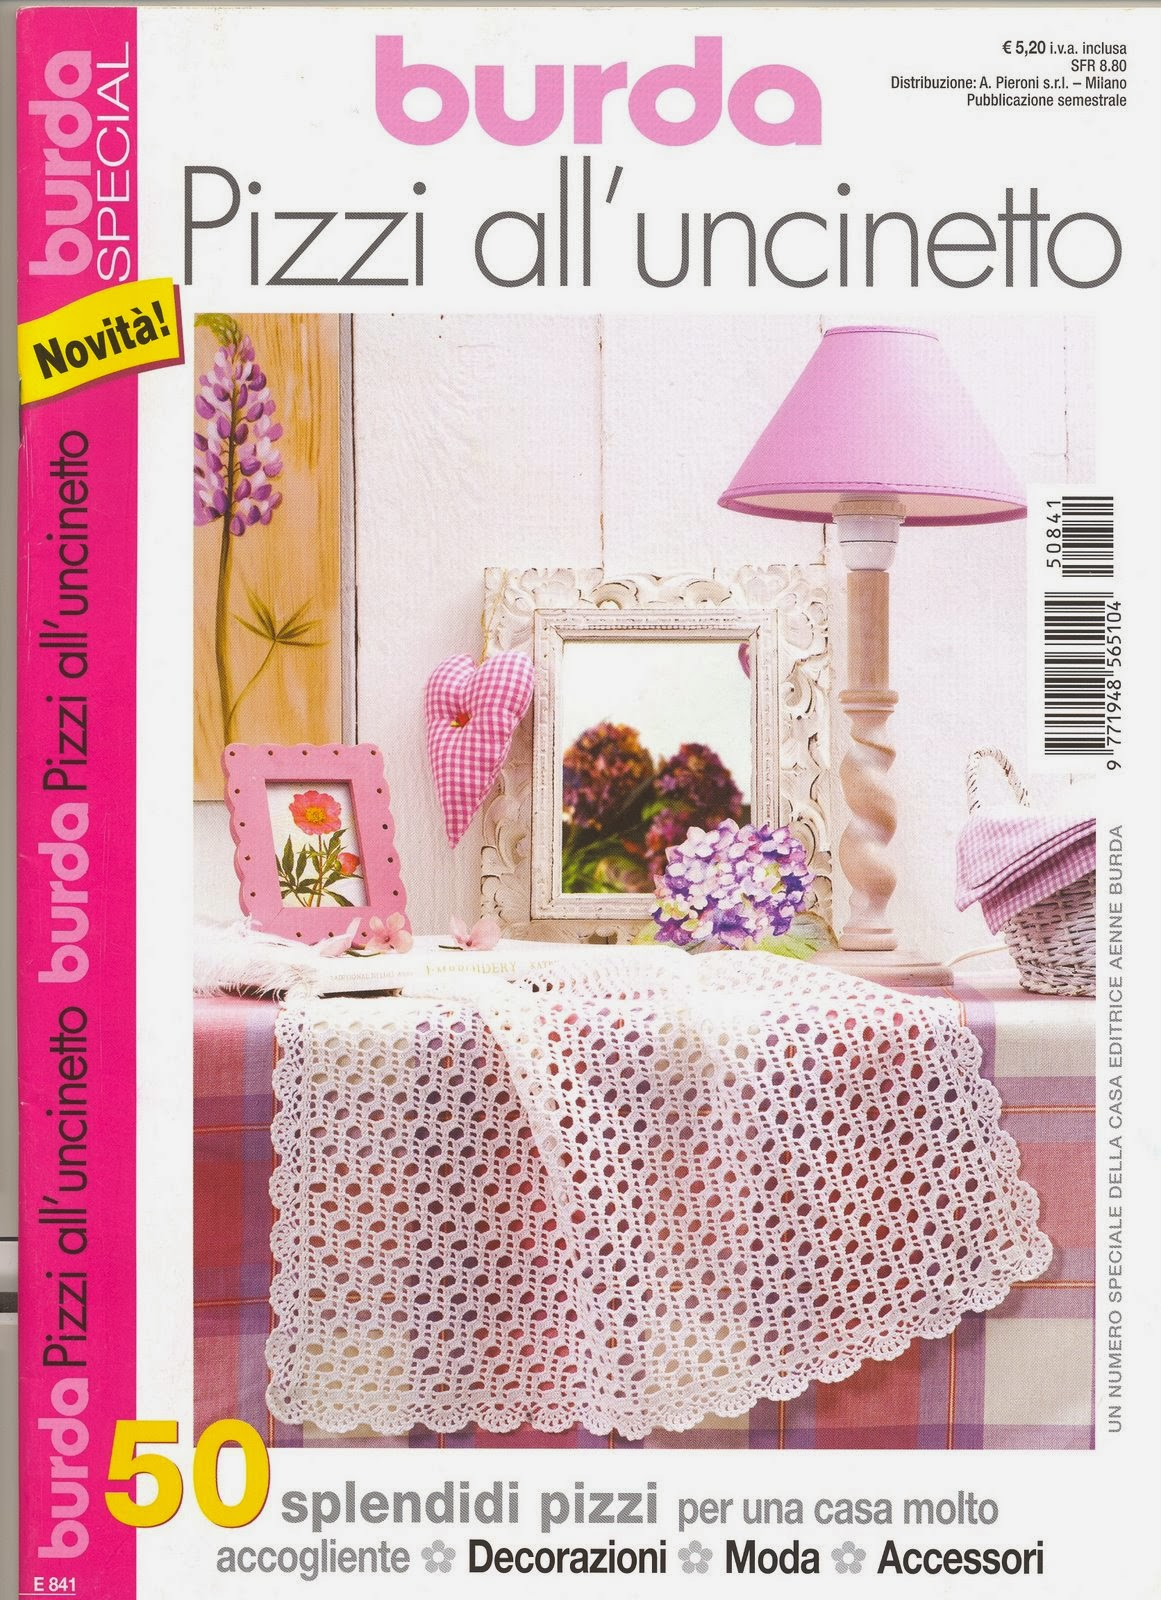 Pizzi uncinetto rivista intera burda for Burda filet all uncinetto